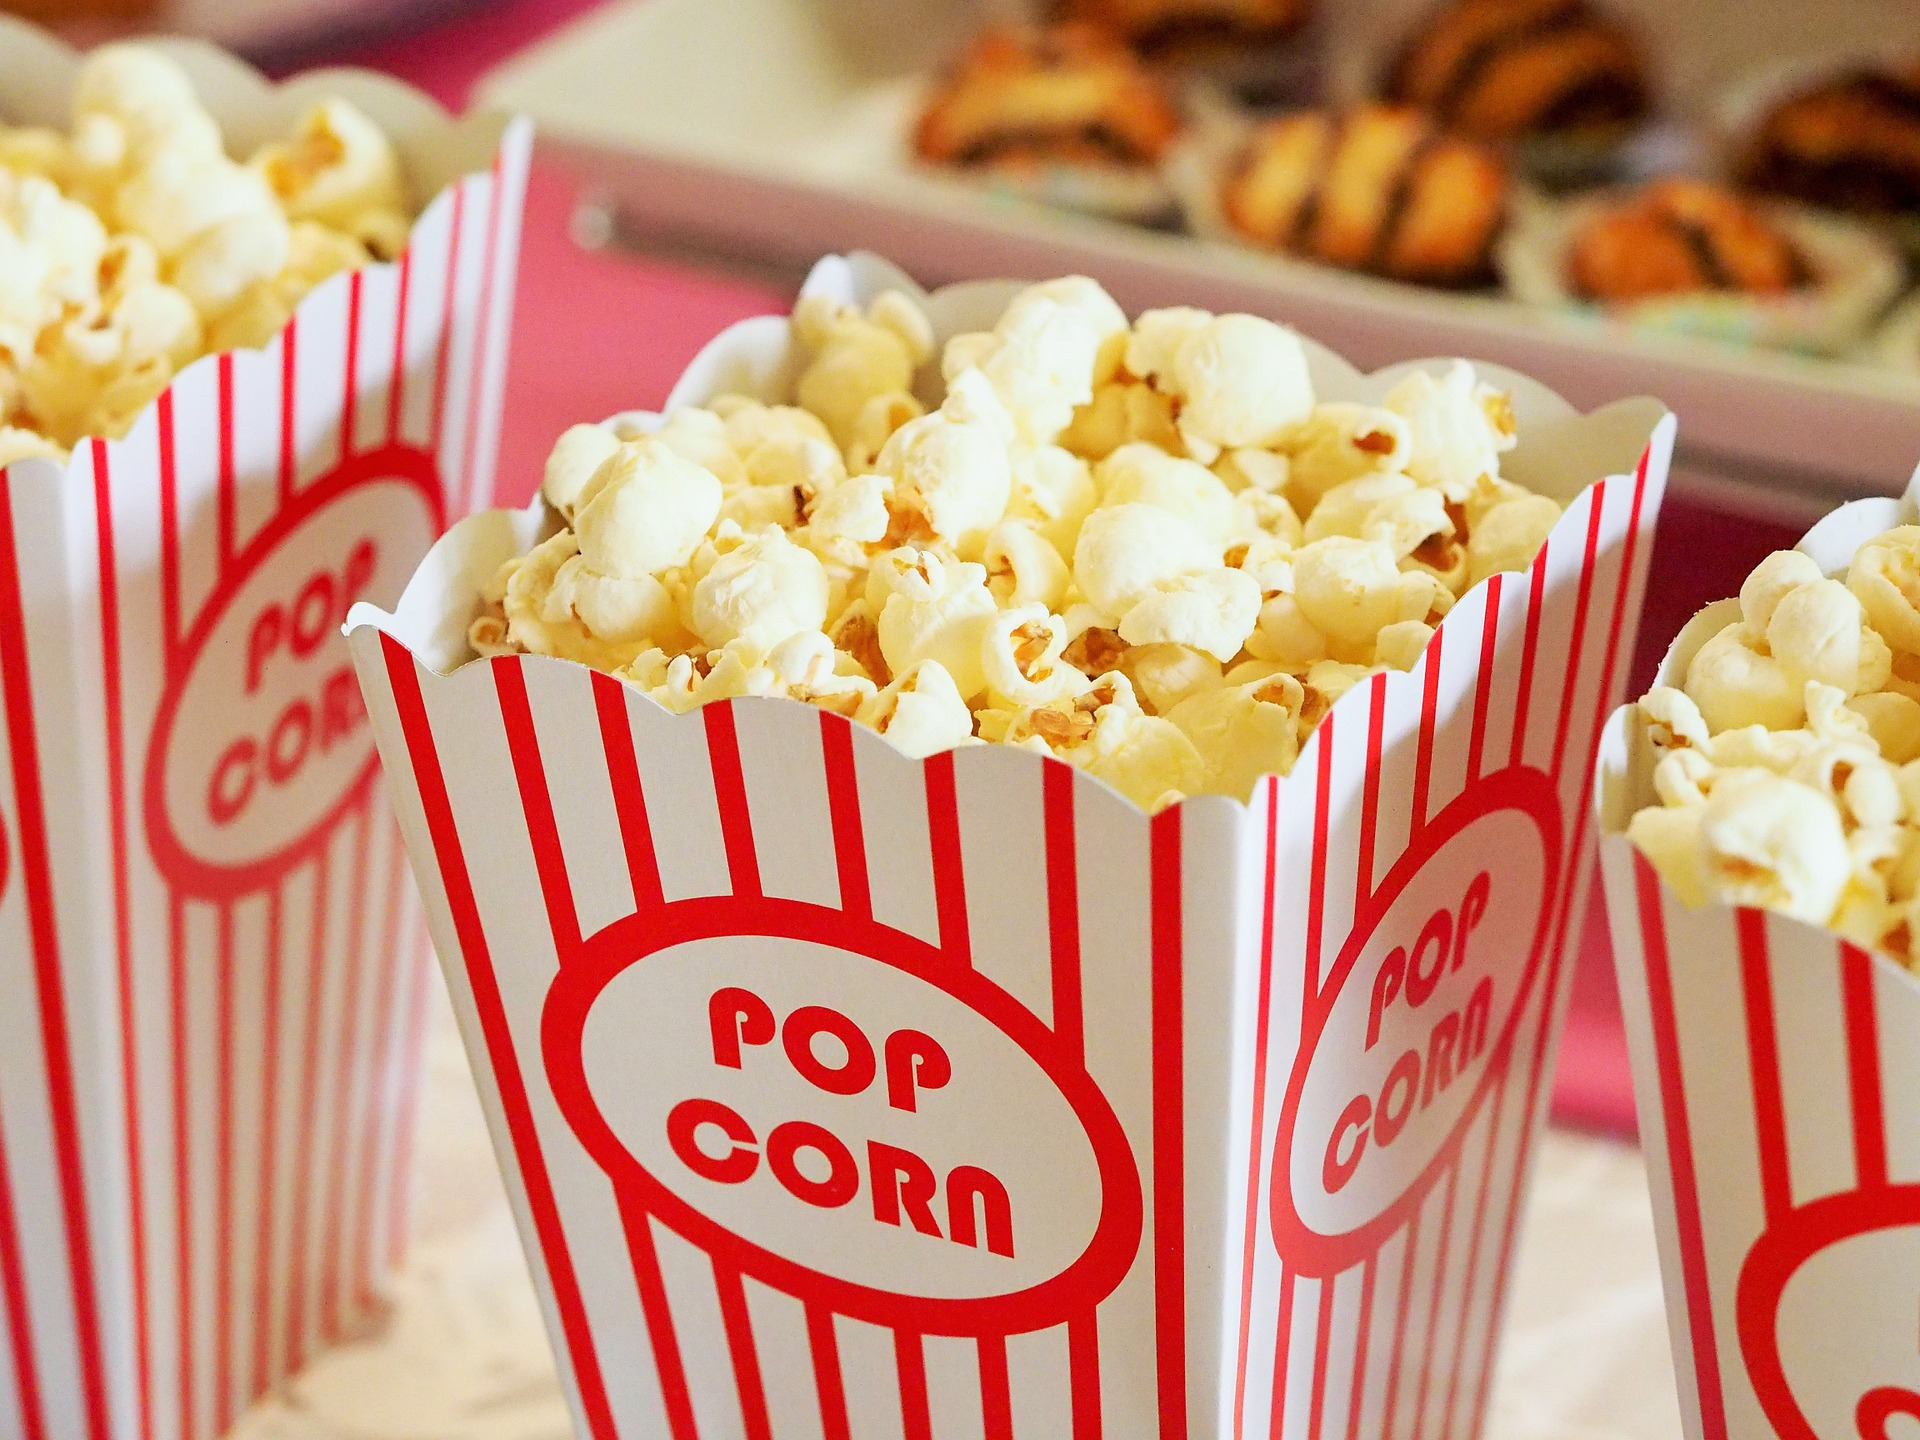 Going to the cinema can be difficult for visually impaired people - Image Credit: dbreen via pixabay